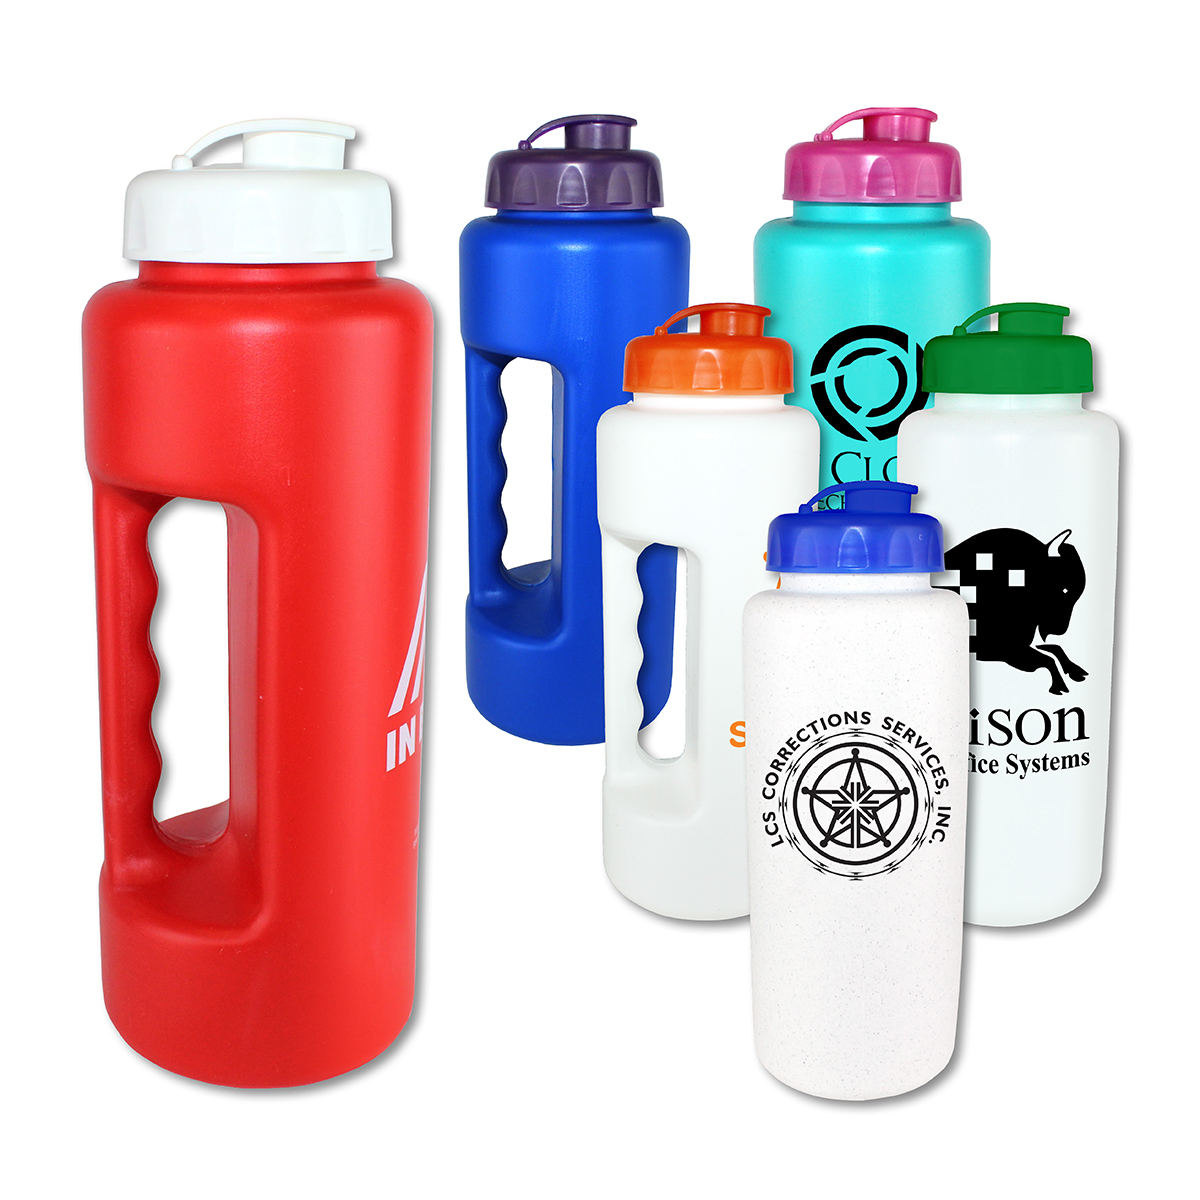 32 oz. Grip Bottle with Flip Top Cap